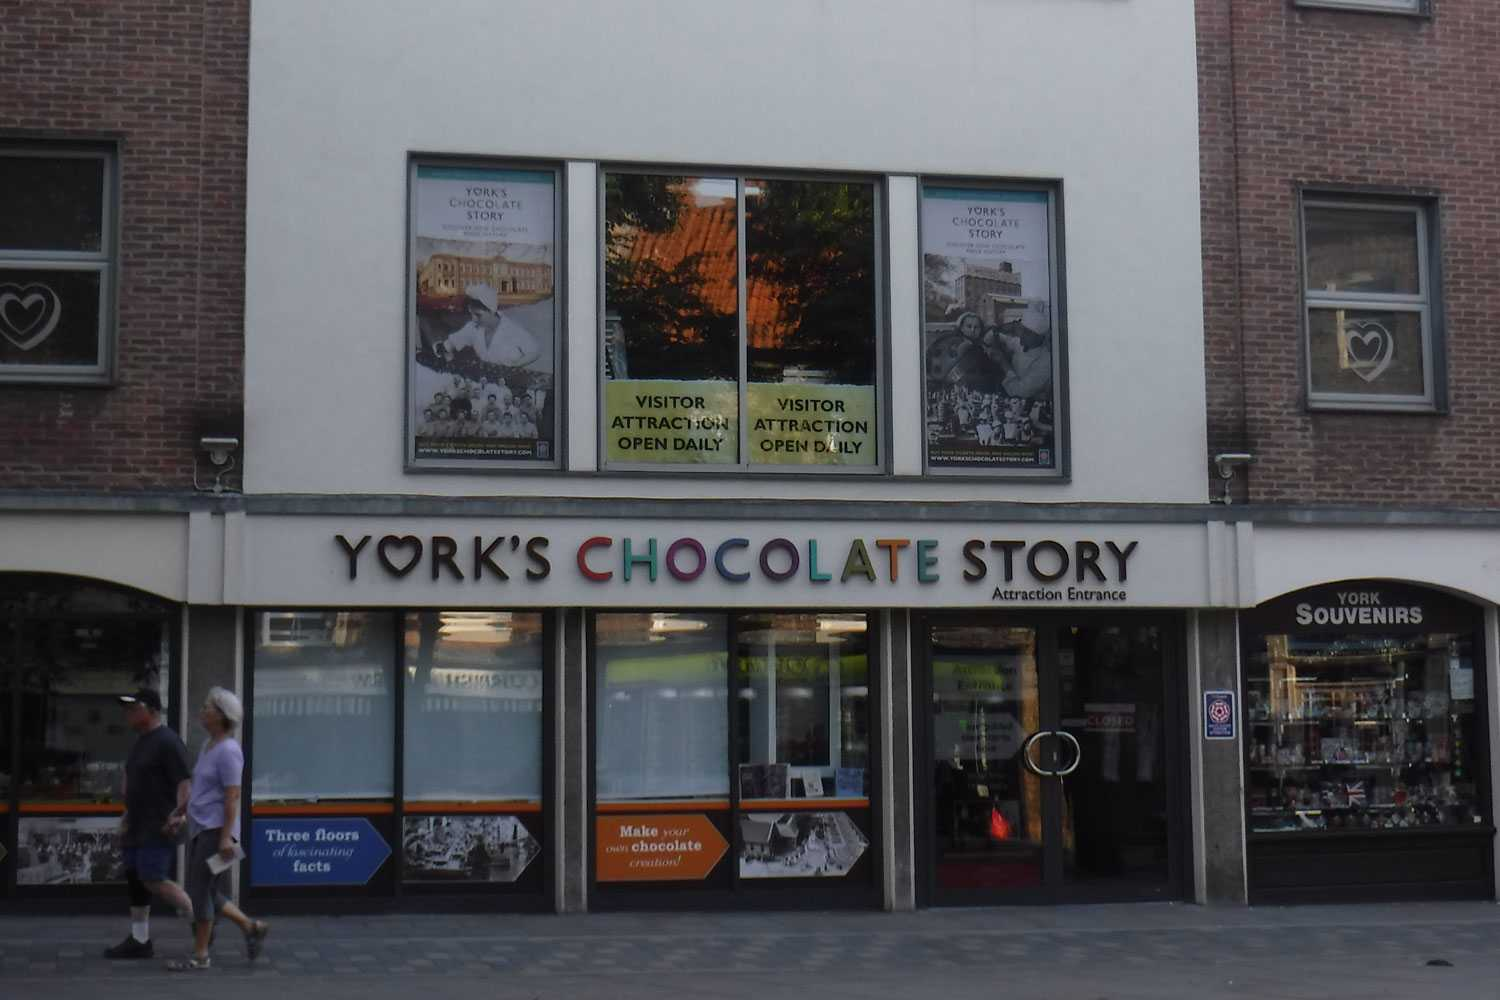 Entrance to York's Chocolate Story